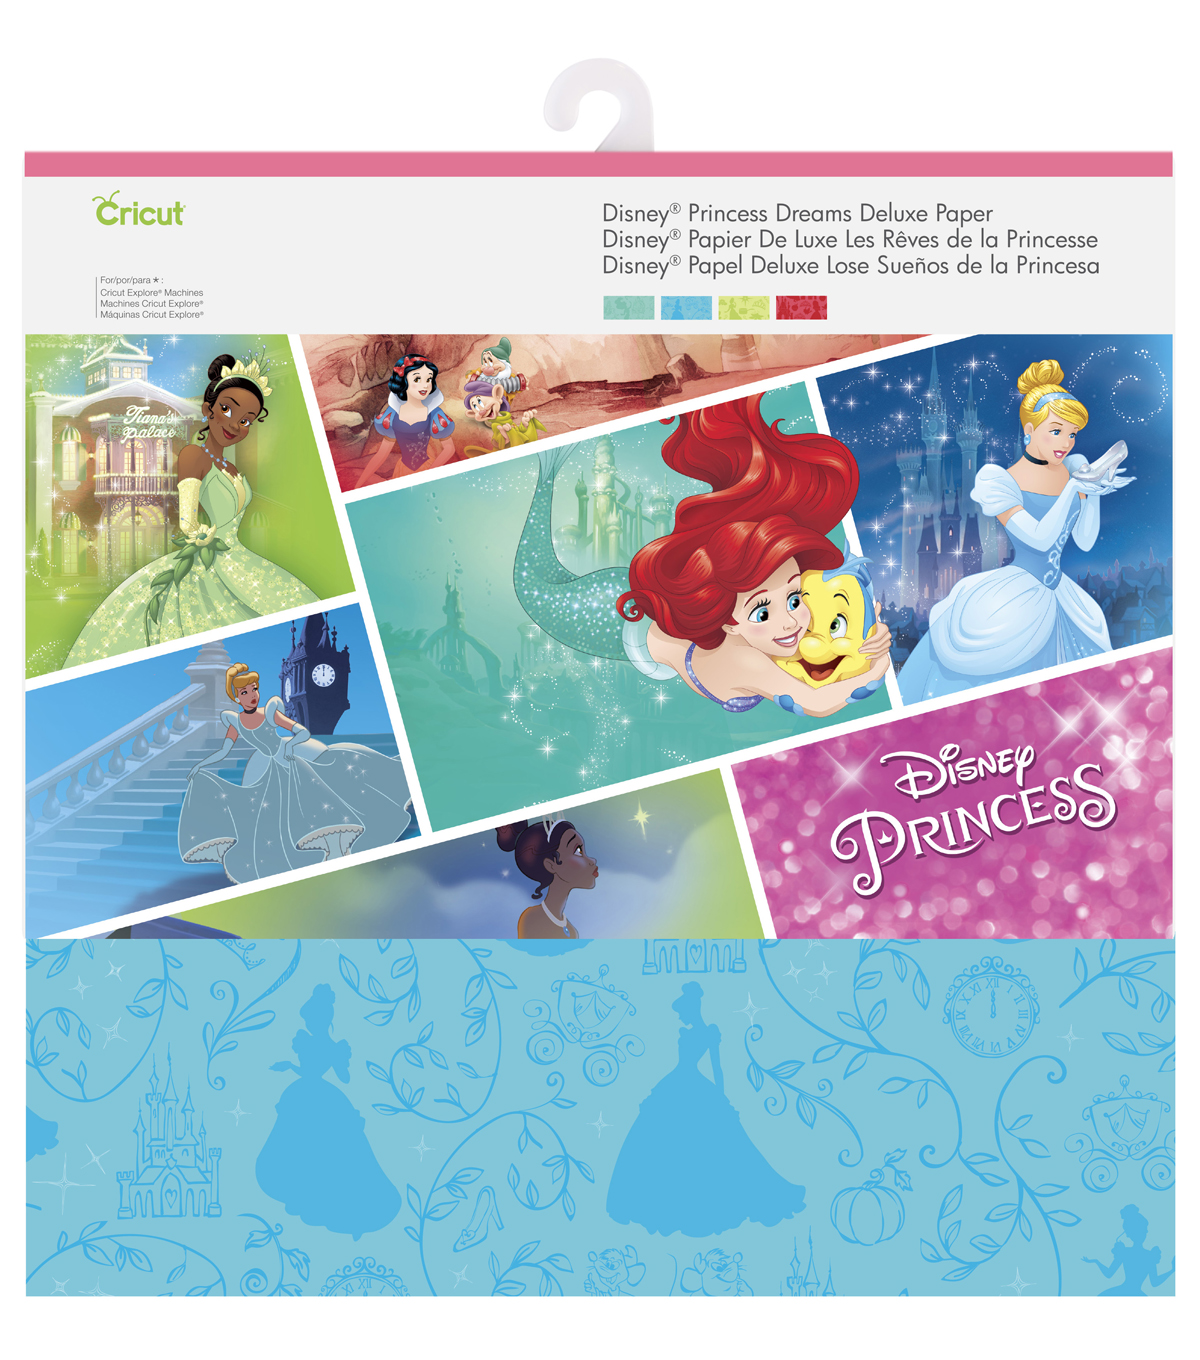 Cricut 12 Pack Disney Princess Dreams Deluxe Papers